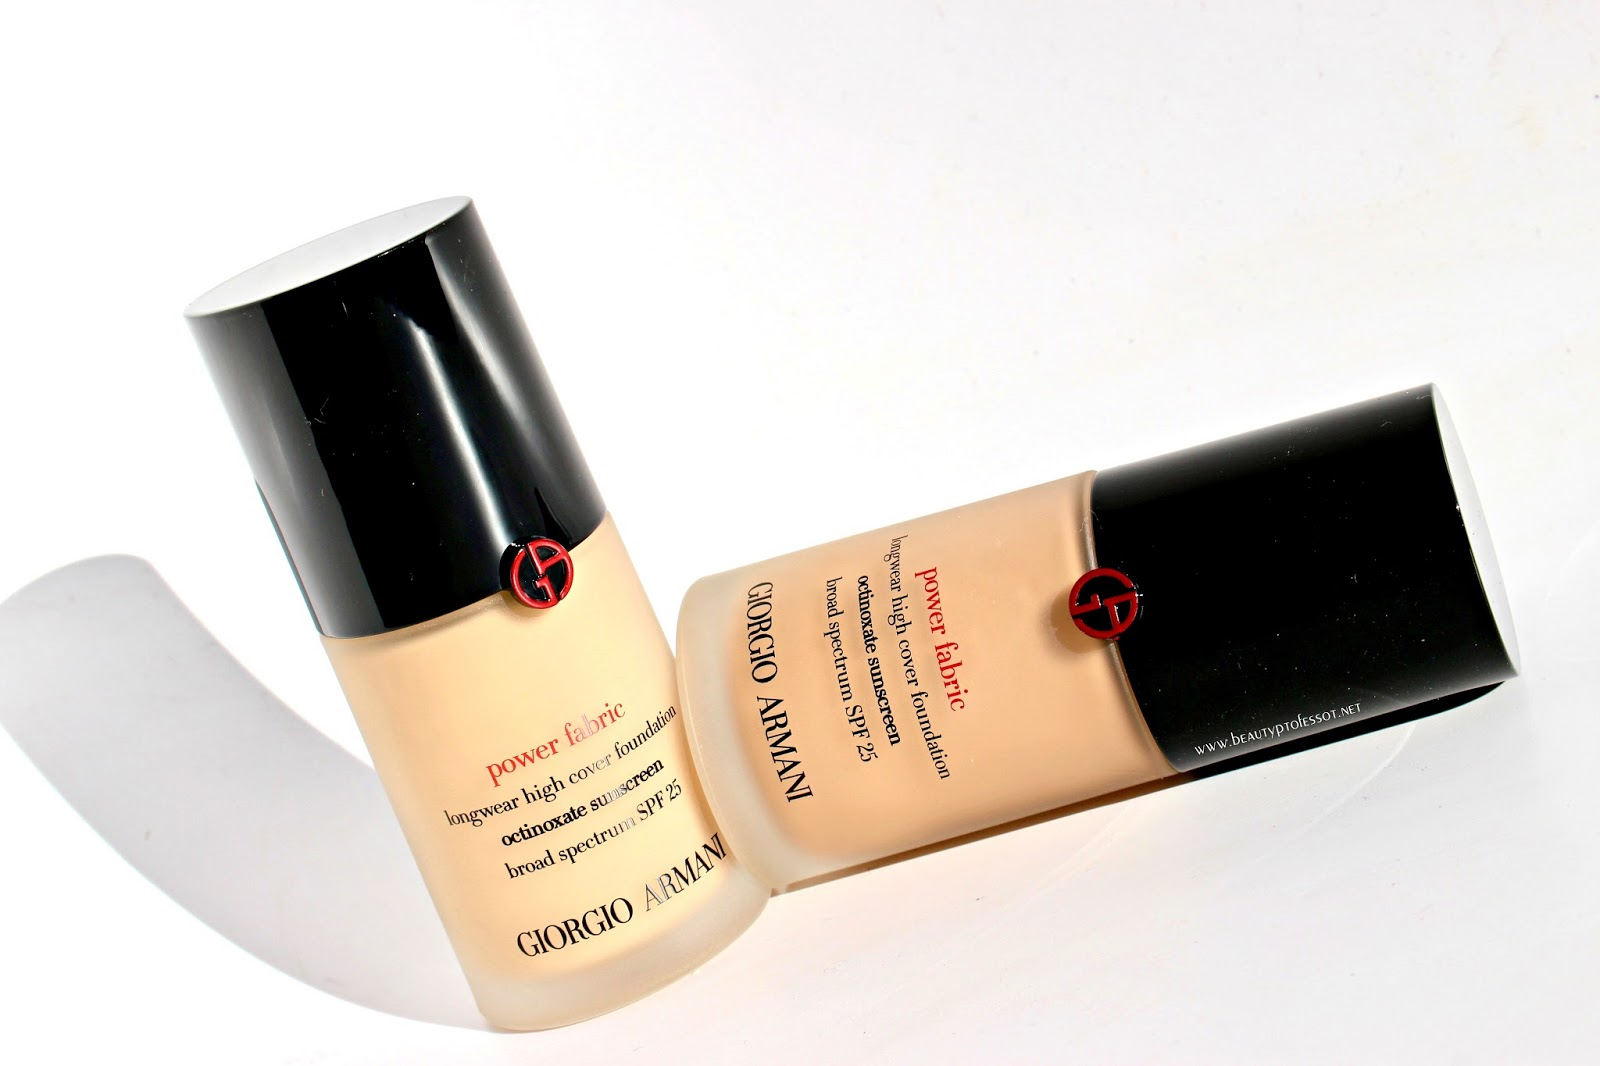 Giorgio Armani Beauty Power Fabric Full Coverage Foundation